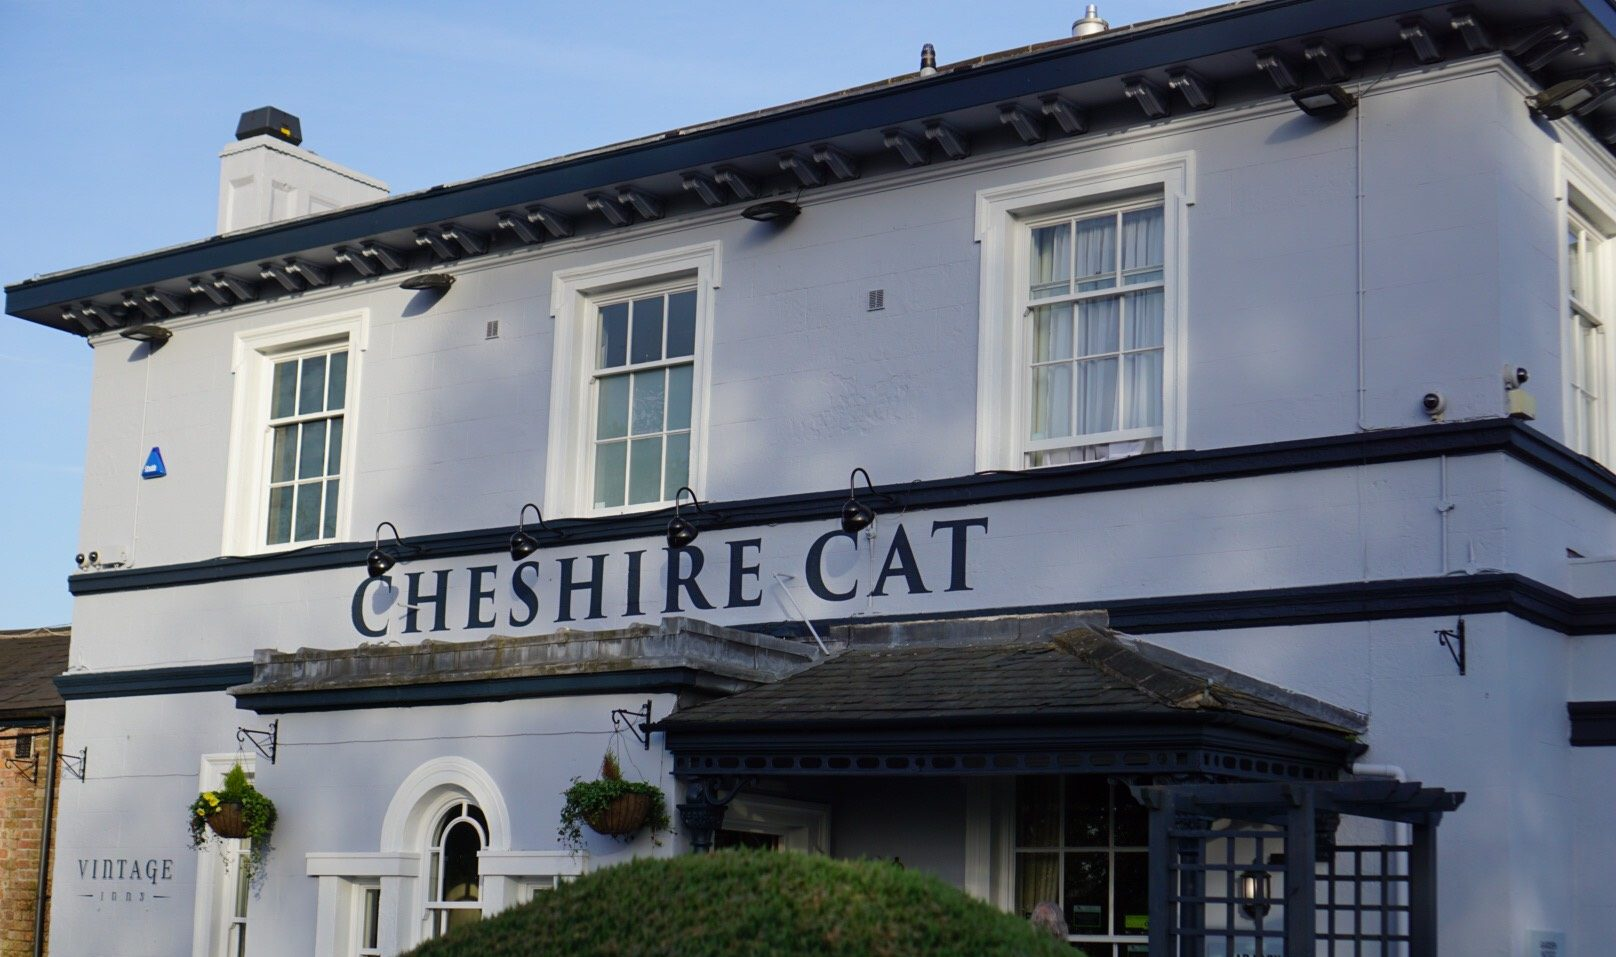 Places to eat in Cheshire The Cheshire Cat